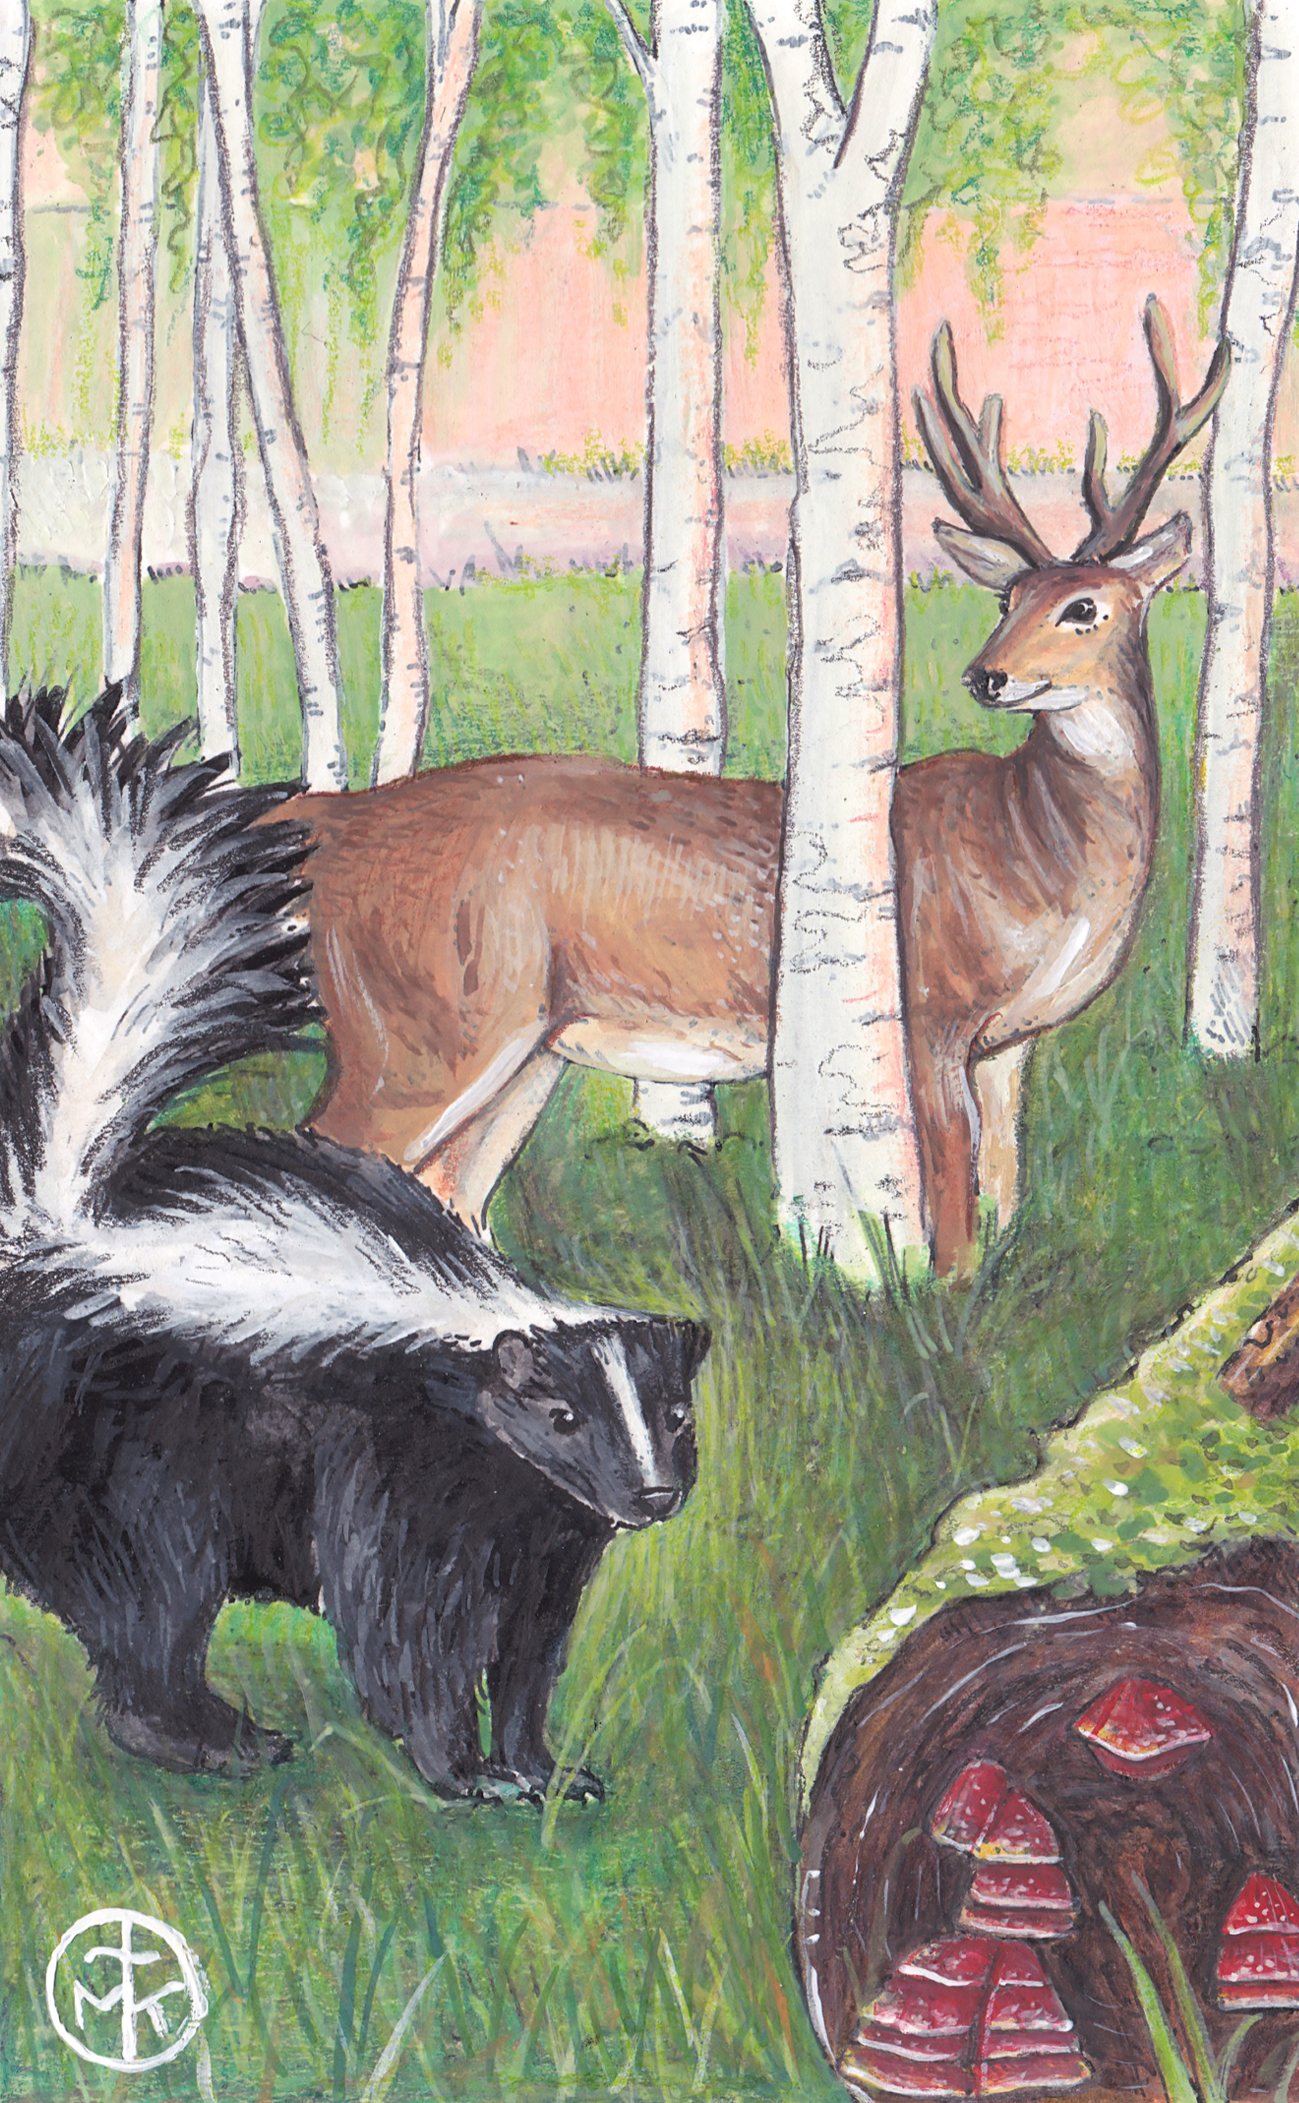 CROPPED - Deer and Skunk.jpg